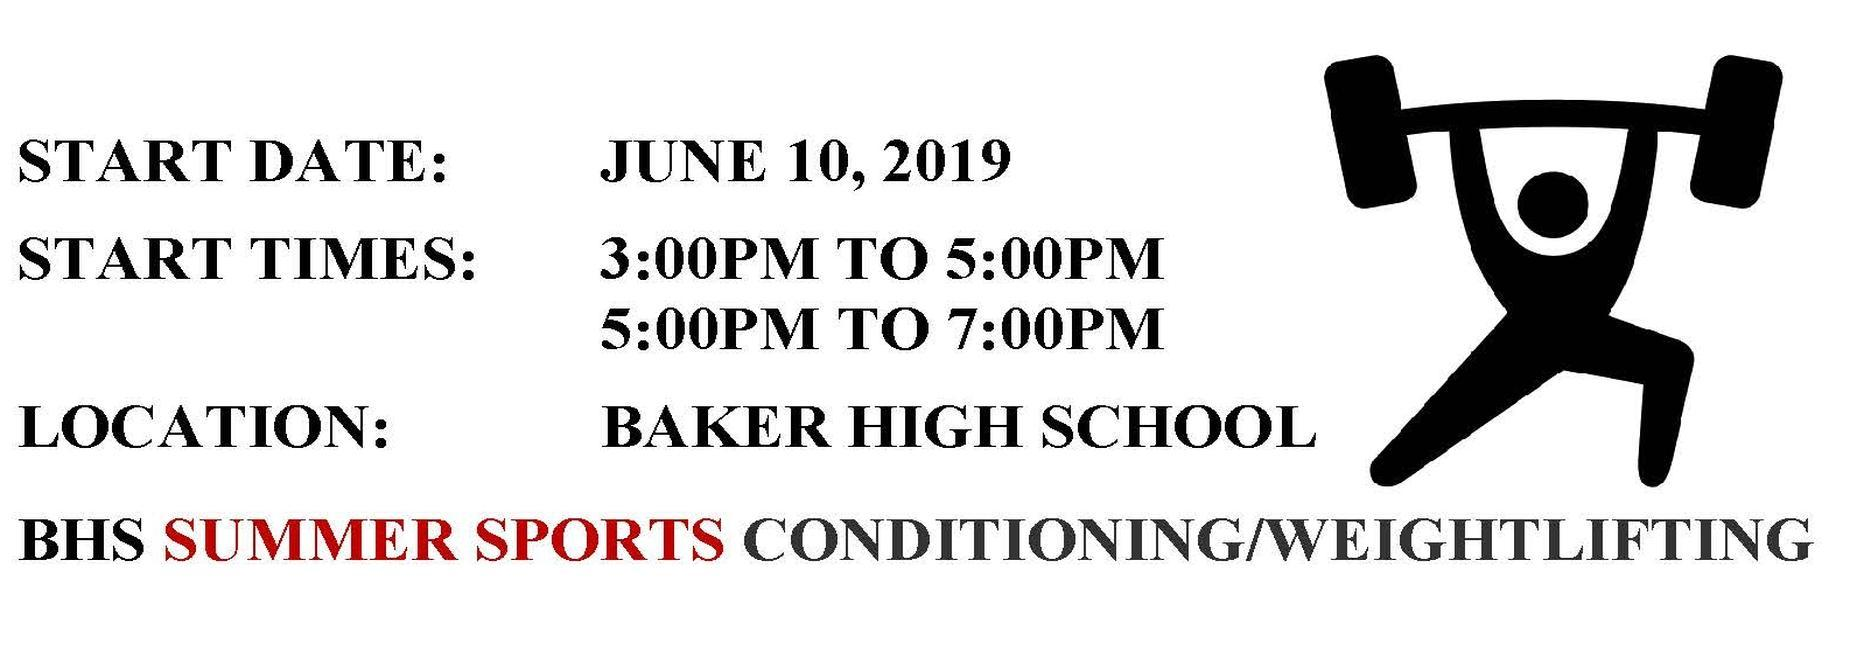 SUMMER SPORTS CONDITIONING/WEIGHTLIFTING